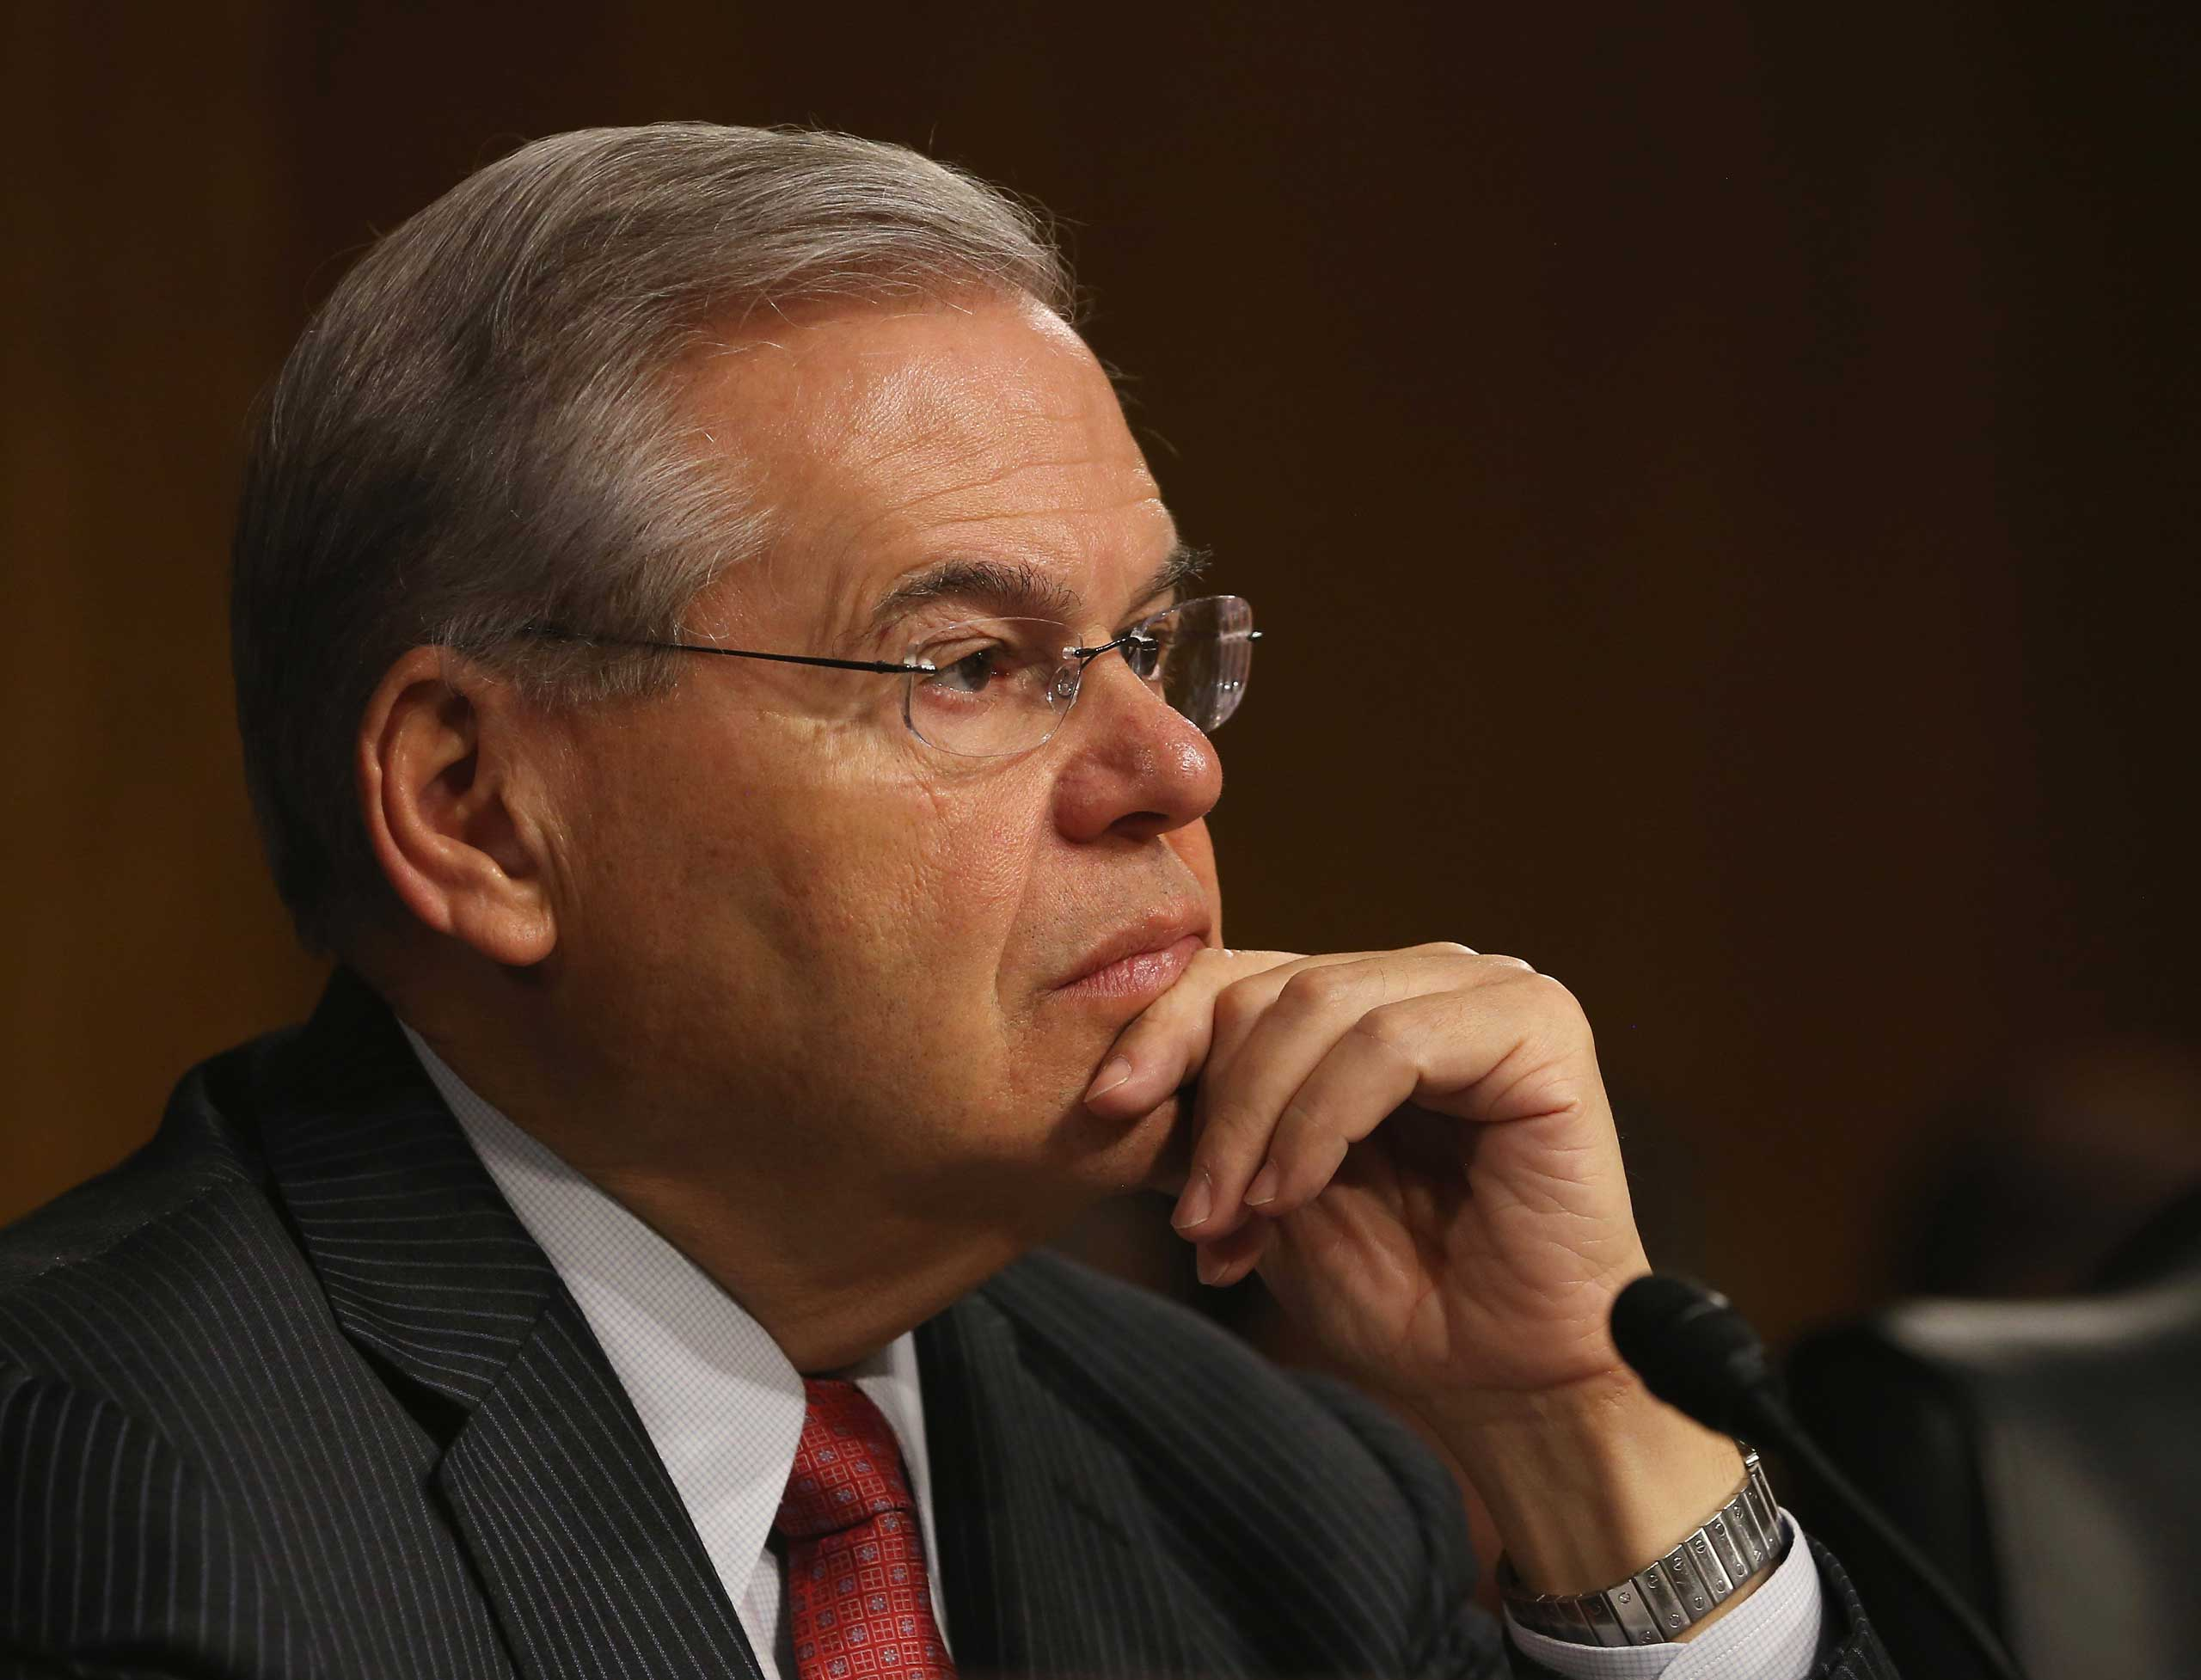 Ranking member Sen. Bob Menendez listens to testimony during a Senate Foreign Relations Committee hearing on Capitol Hill,  in Washington on March 11, 2015.